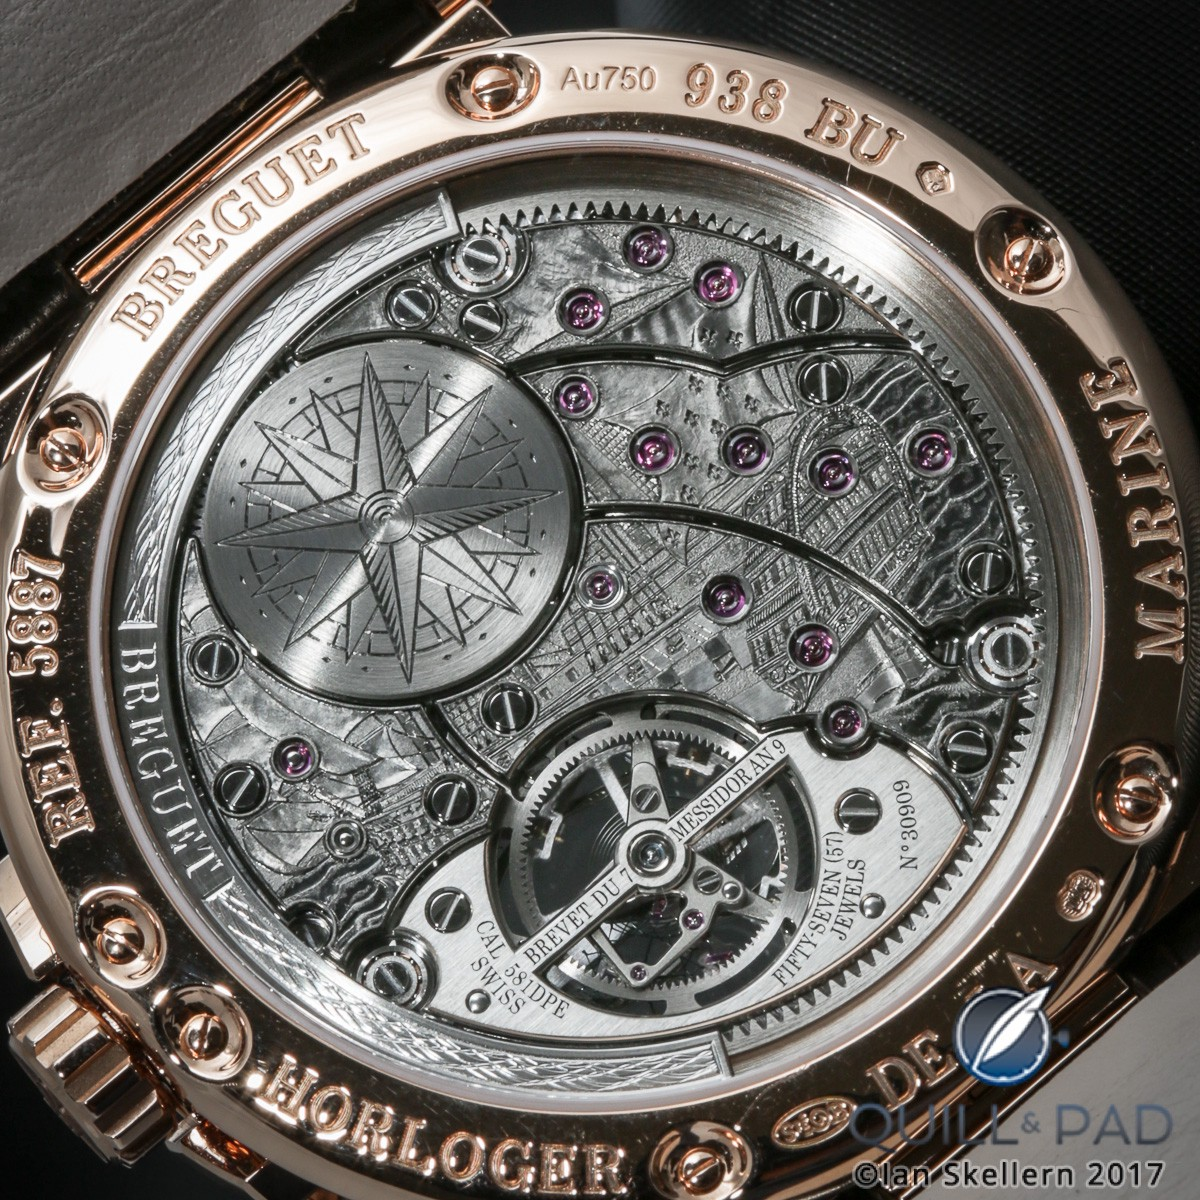 View through the display back to the engraved movement of theBreguet Marine Équation Marchante Ref. 5887